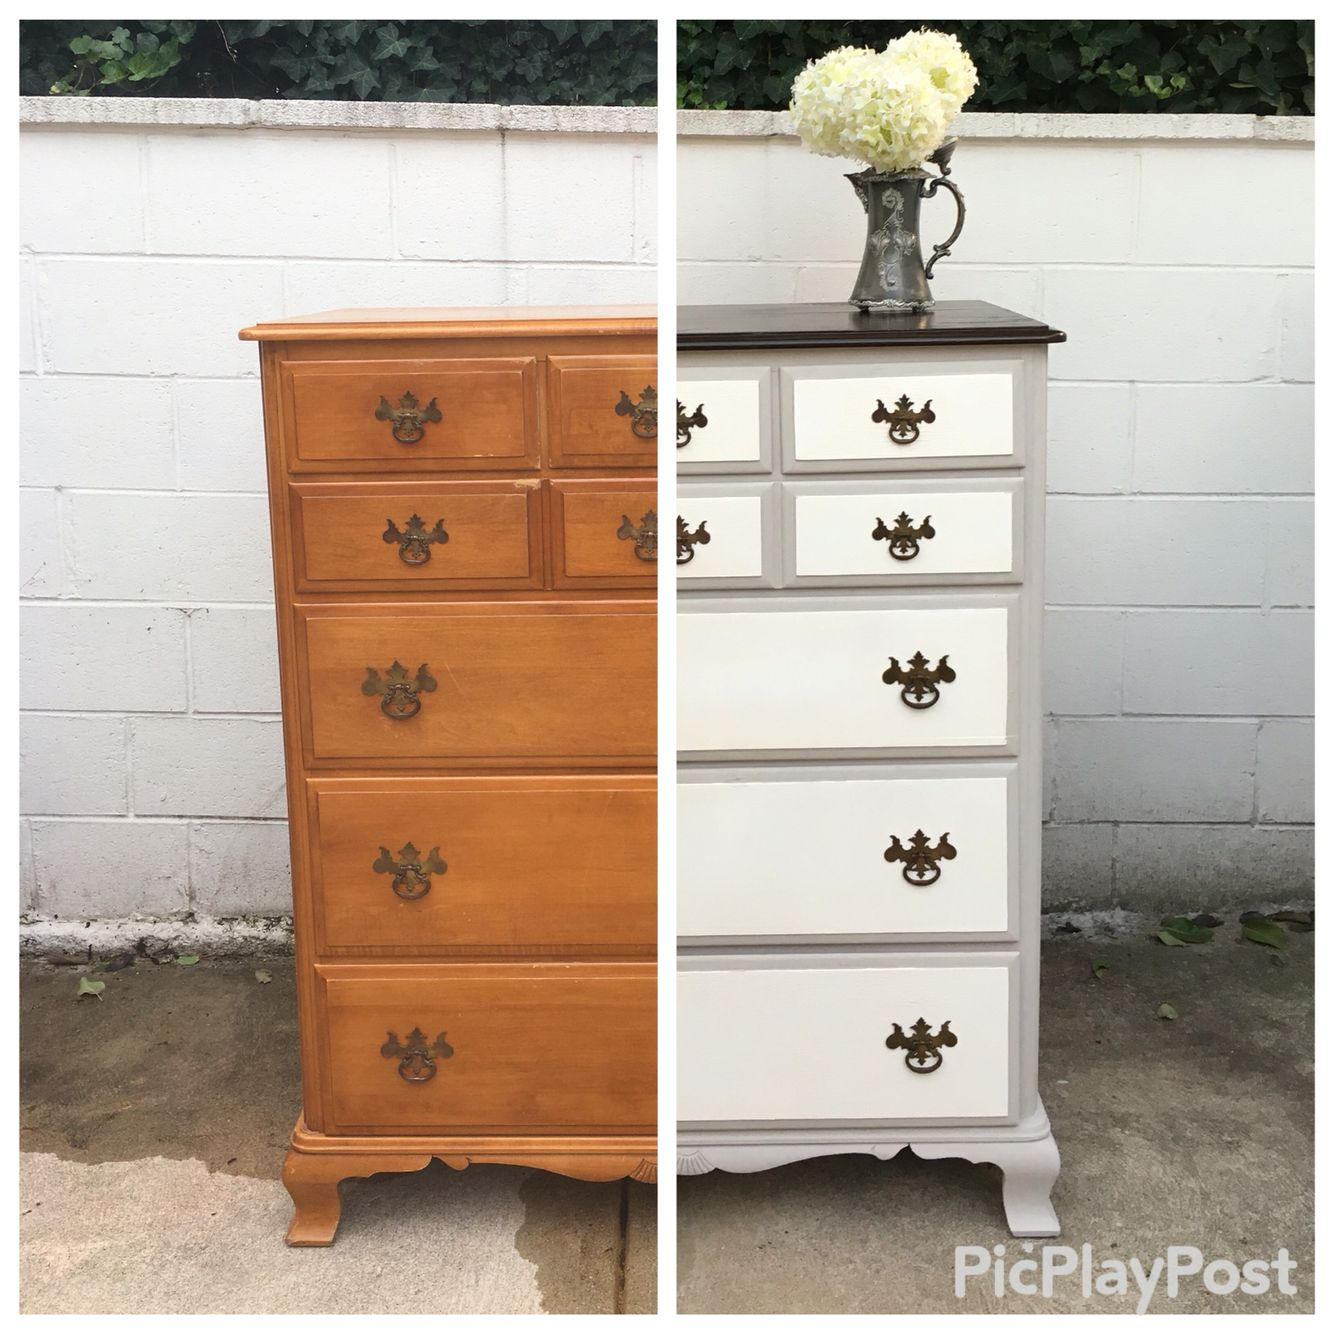 Diy 58 year old maple Best color to paint dresser